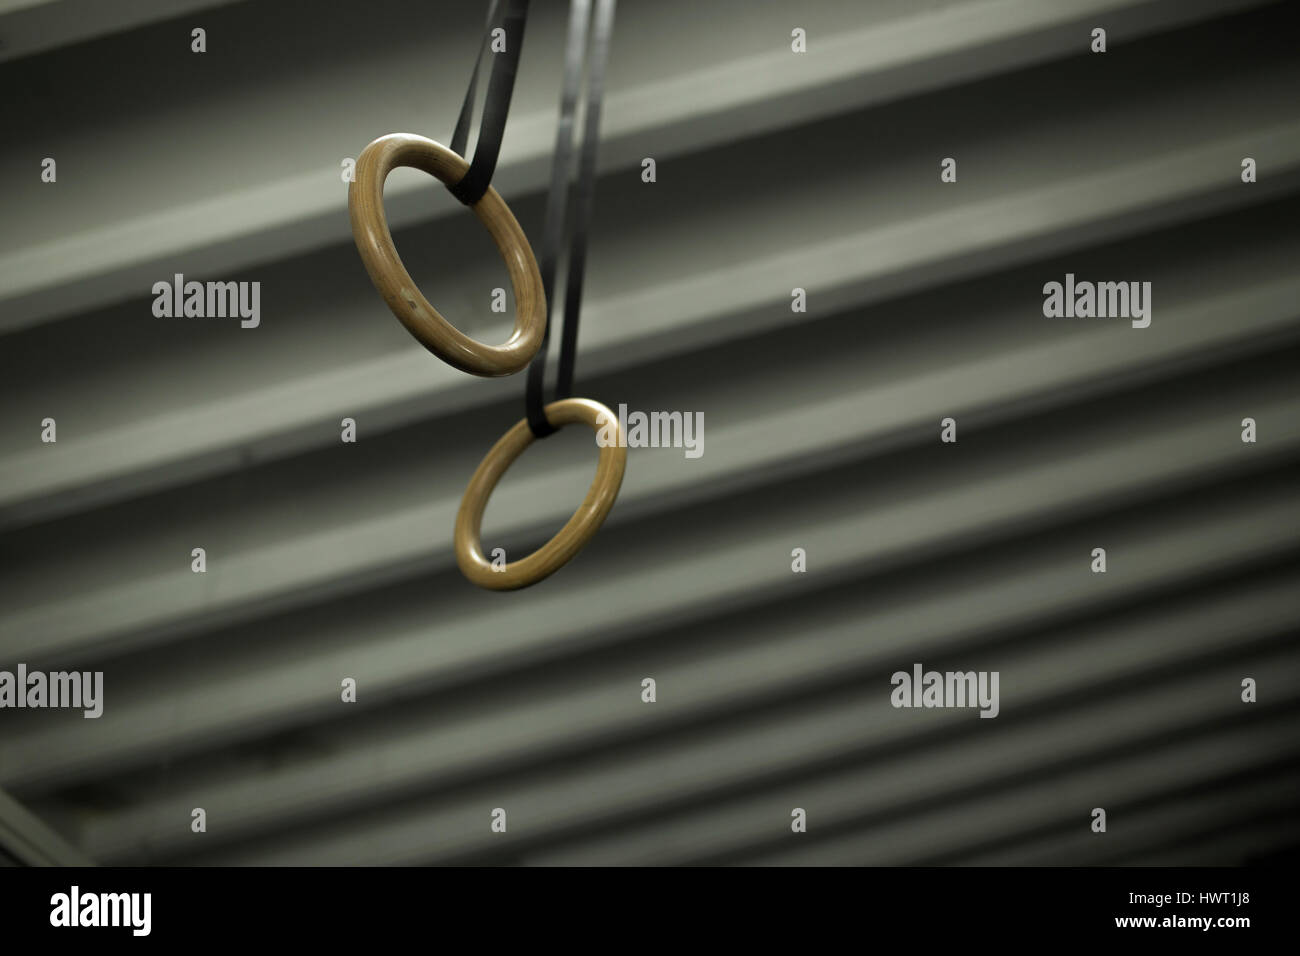 Low angle view of gymnastic rings hanging on ceiling - Stock Image